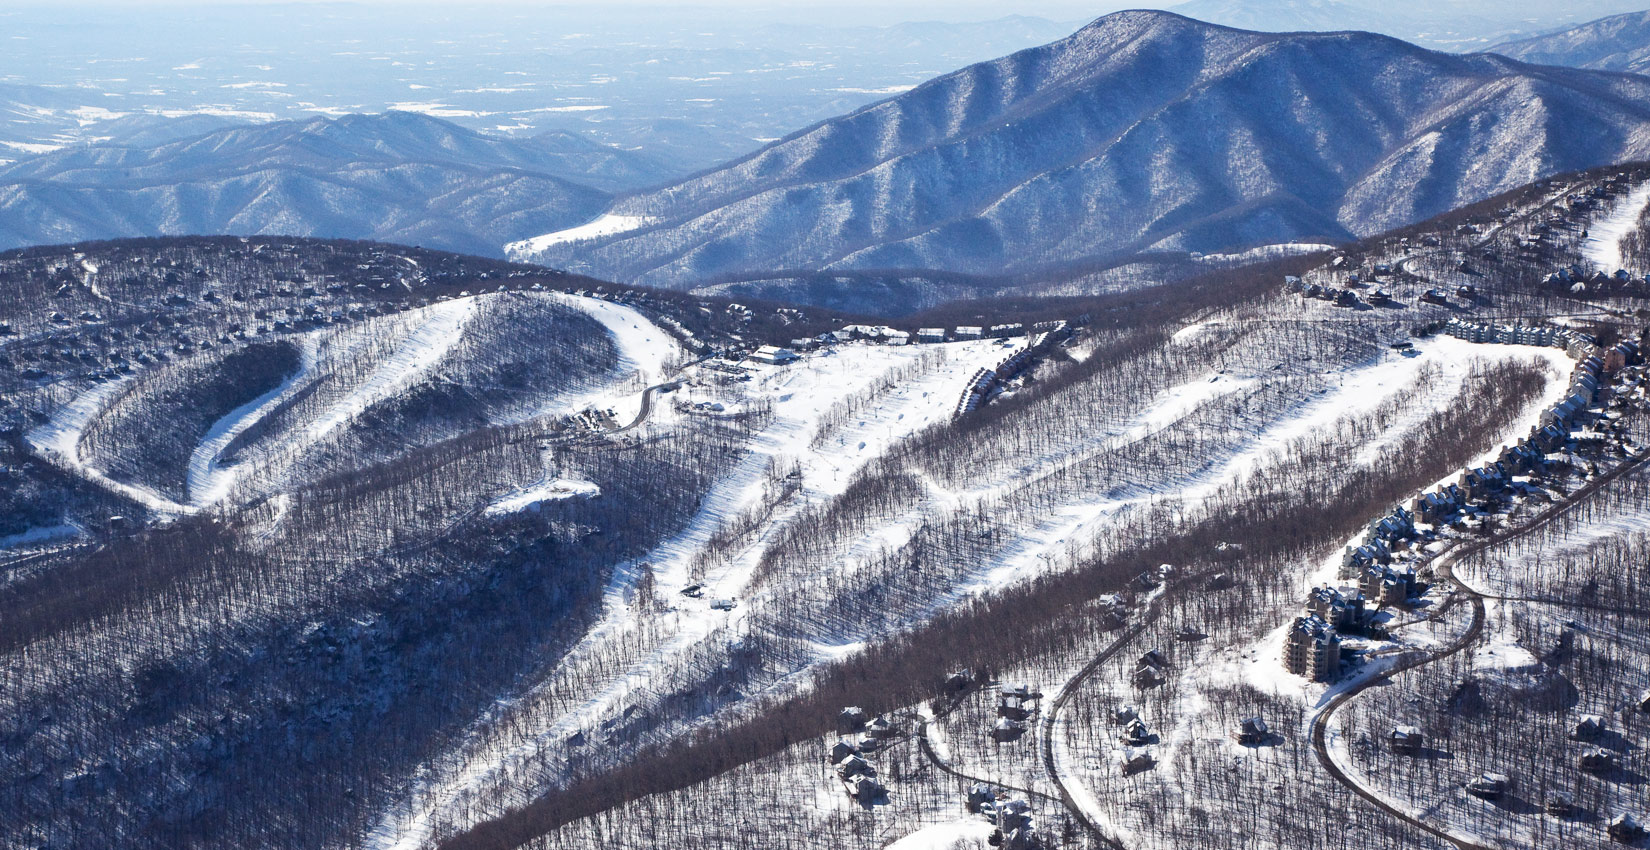 Wintergreen Resort's slopes    offer something  for both black diamond fans and tiny tots. The snowboarding park is served by a six-seat high-speed lift. There is  ice skating . The new, multi-million-gallon  snowmaking  system ensures the grins keep coming.  Check it out .